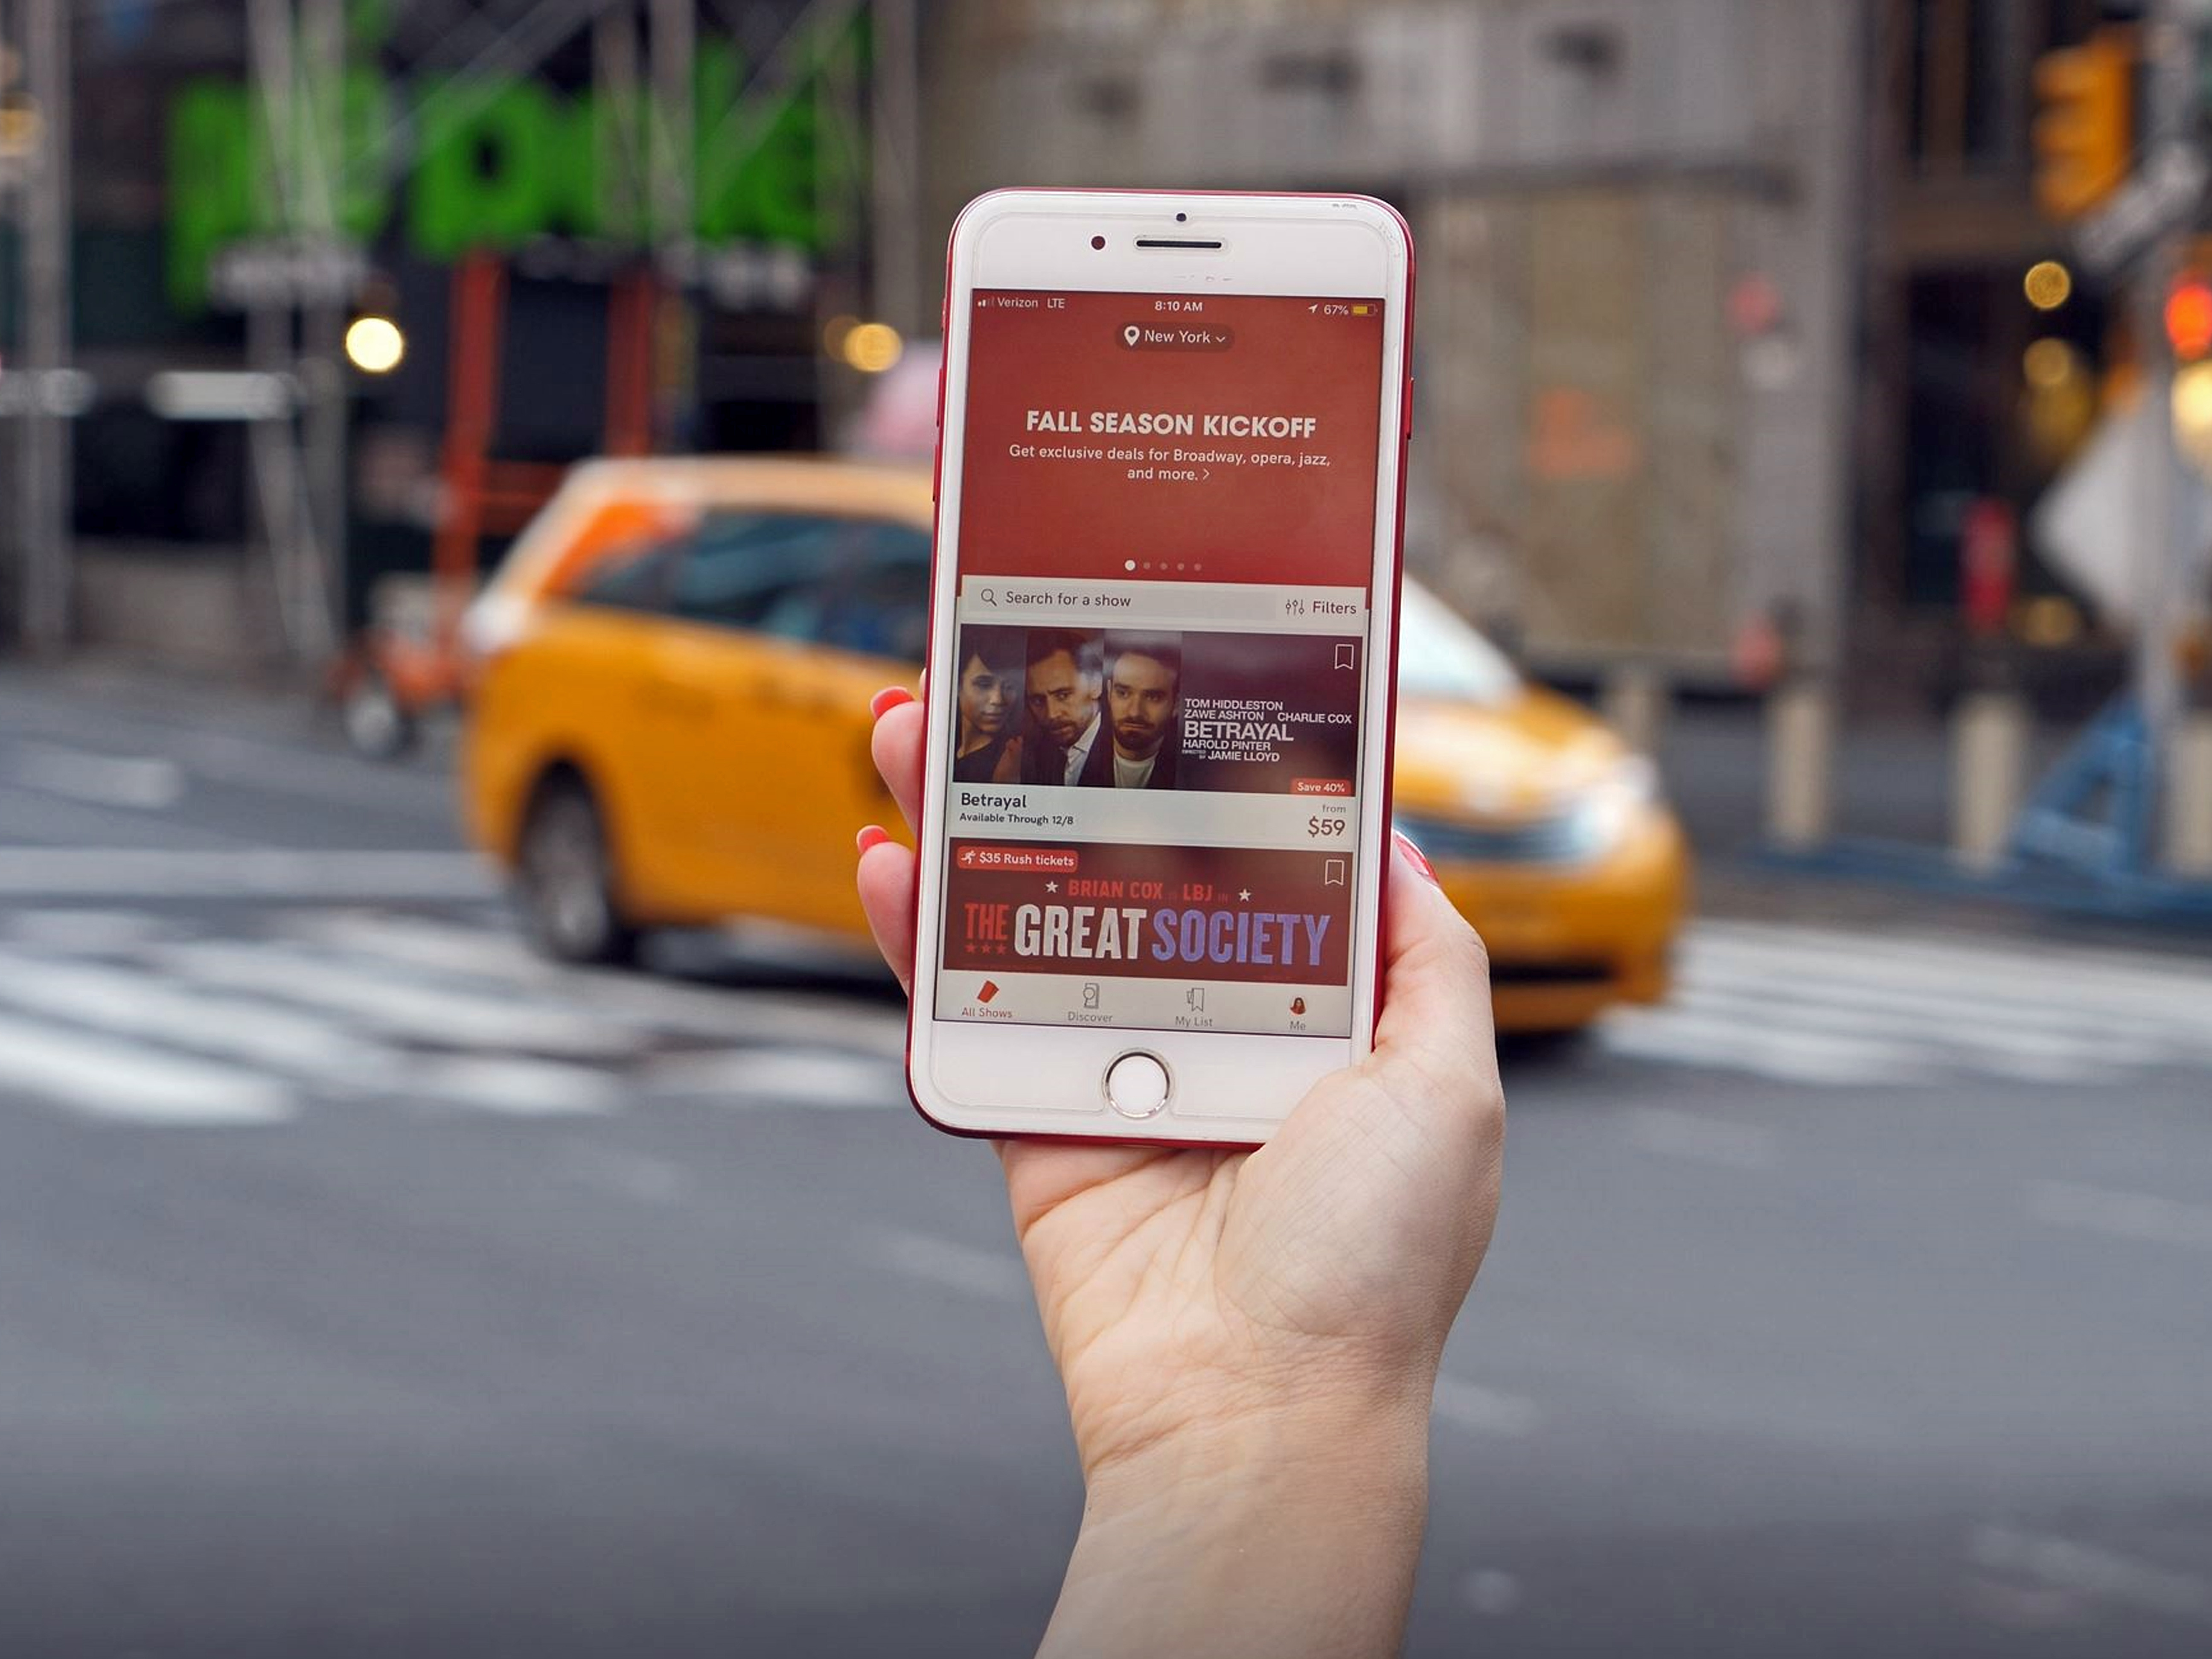 NYC Travel Guide: Budget Broadway Tickets TodayTix app iphone yellow cab taxi